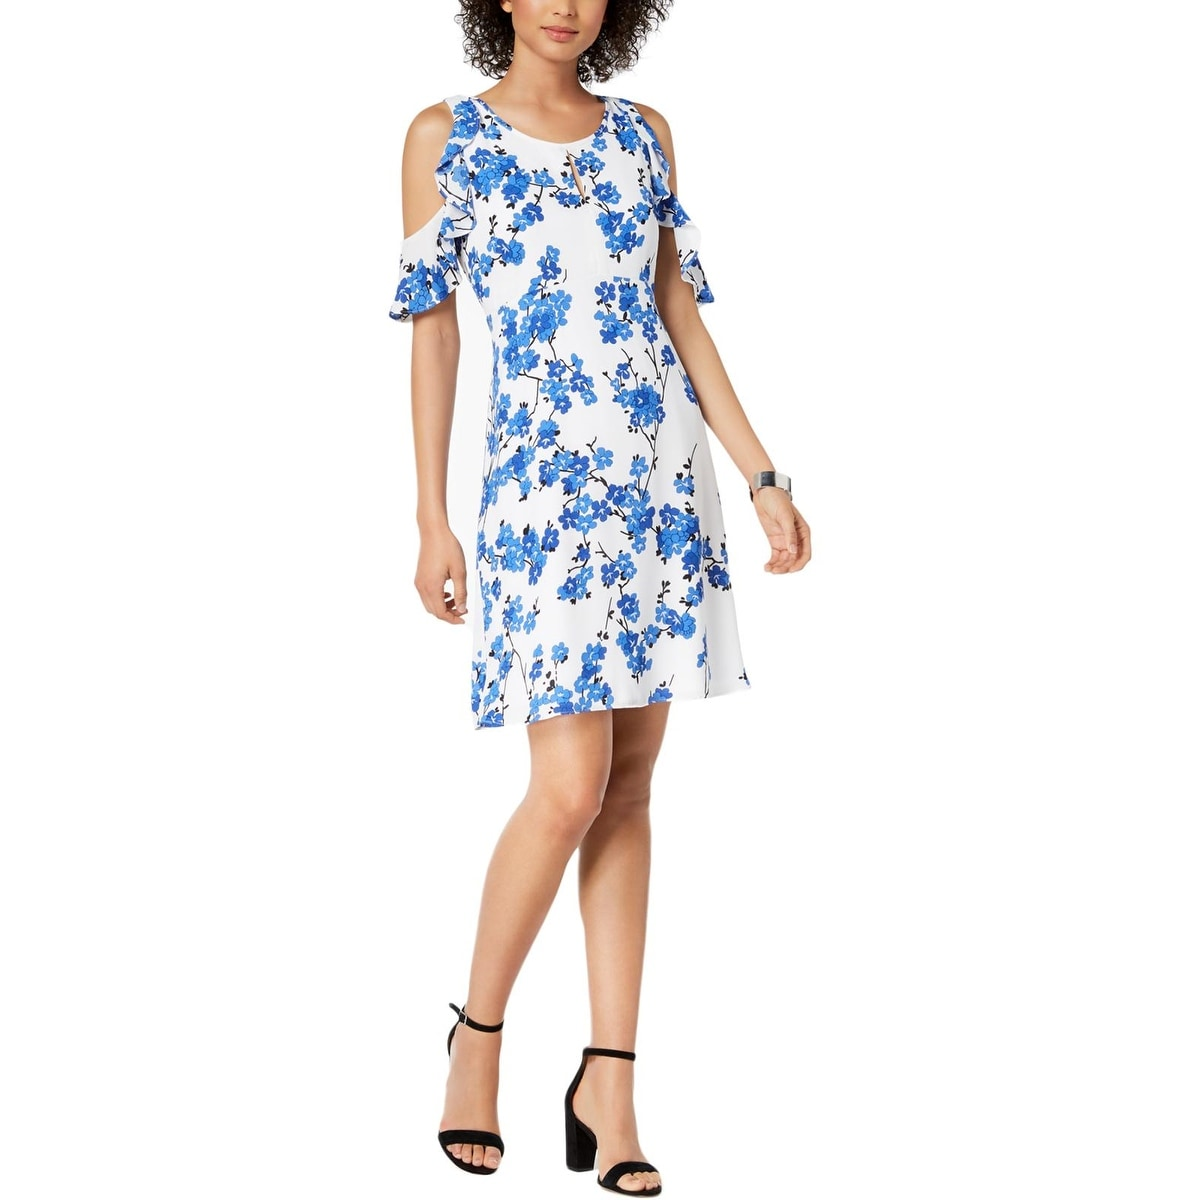 b0e7b5989944 Nine West Dresses | Find Great Women's Clothing Deals Shopping at Overstock